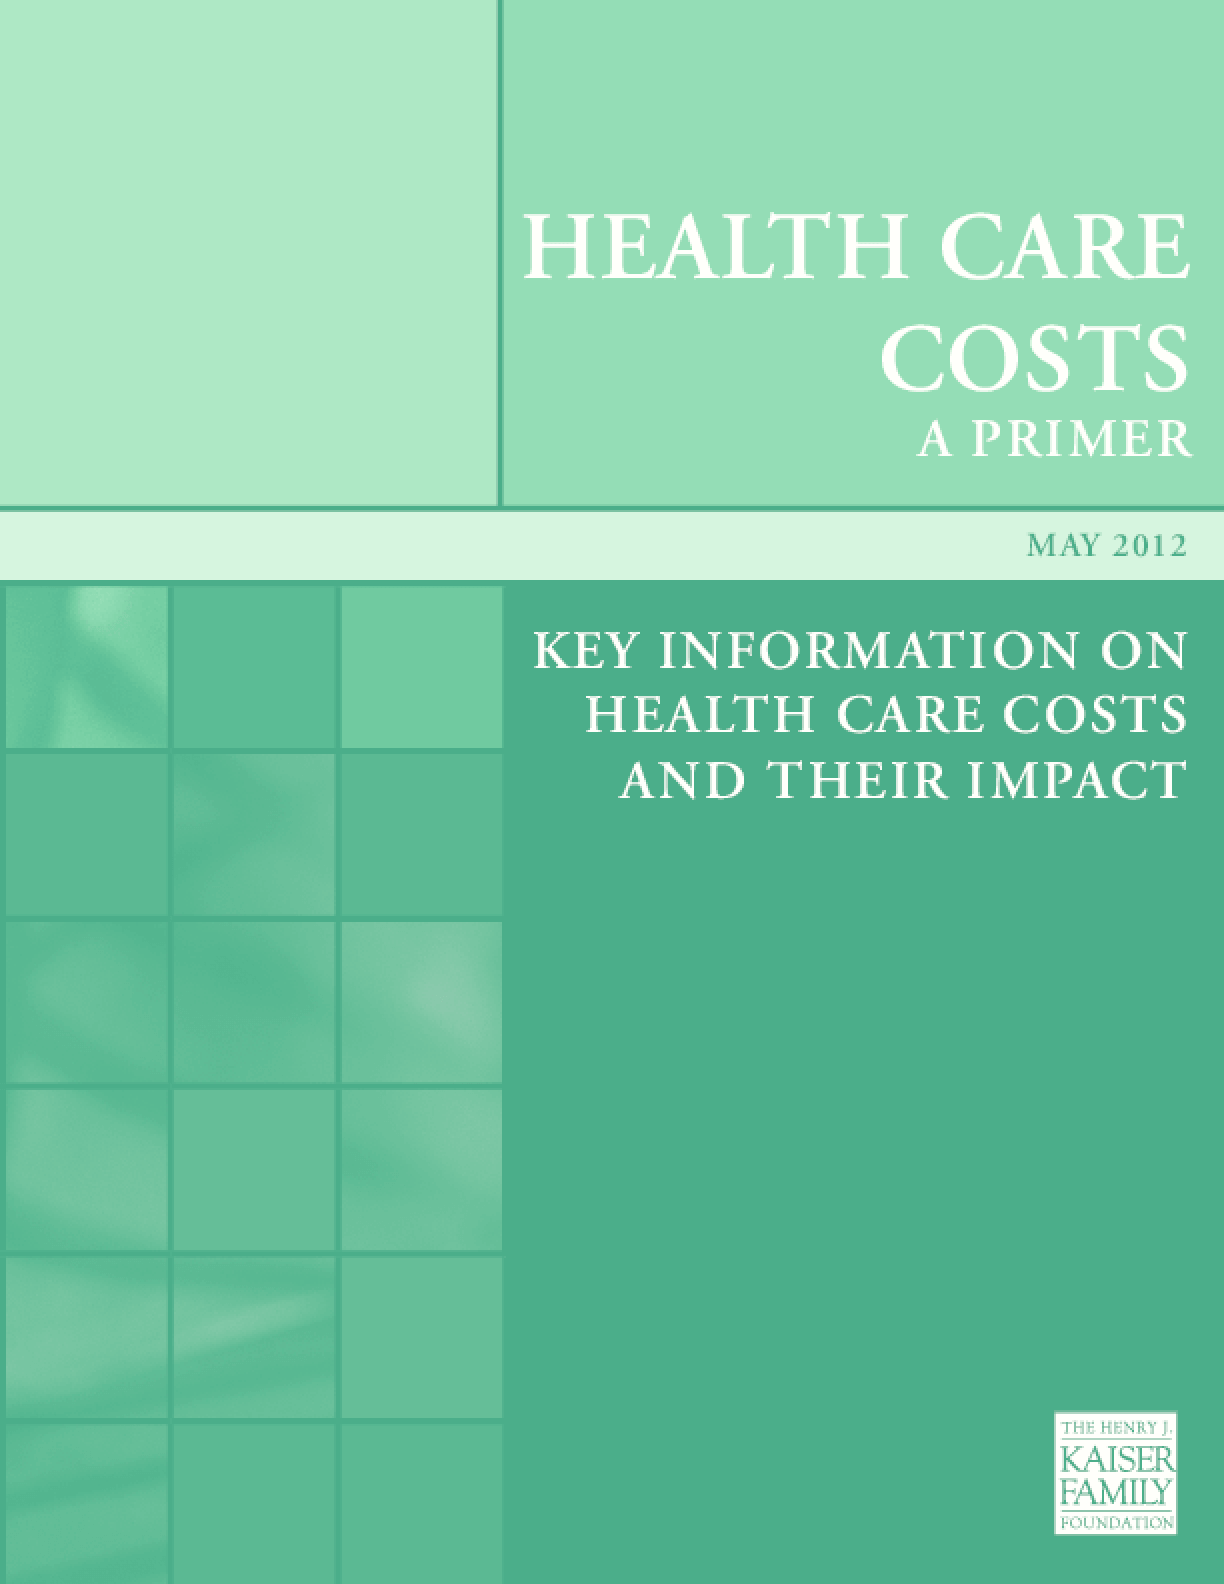 Health Care Costs: A Primer 2012: Key Information on Health Care Costs and Their Impact